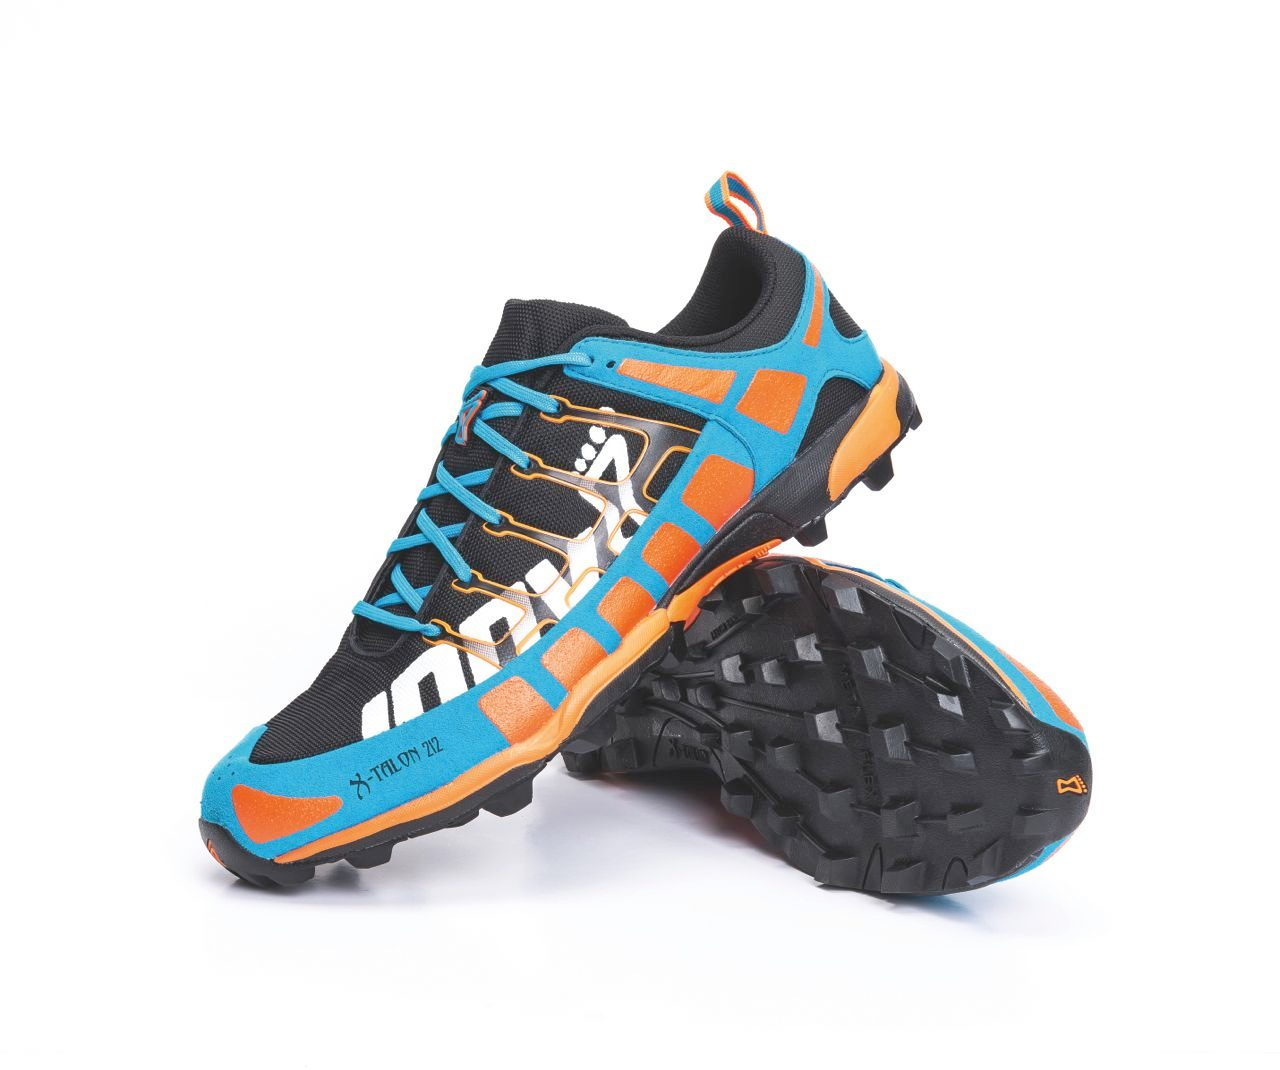 Off-road run shoes